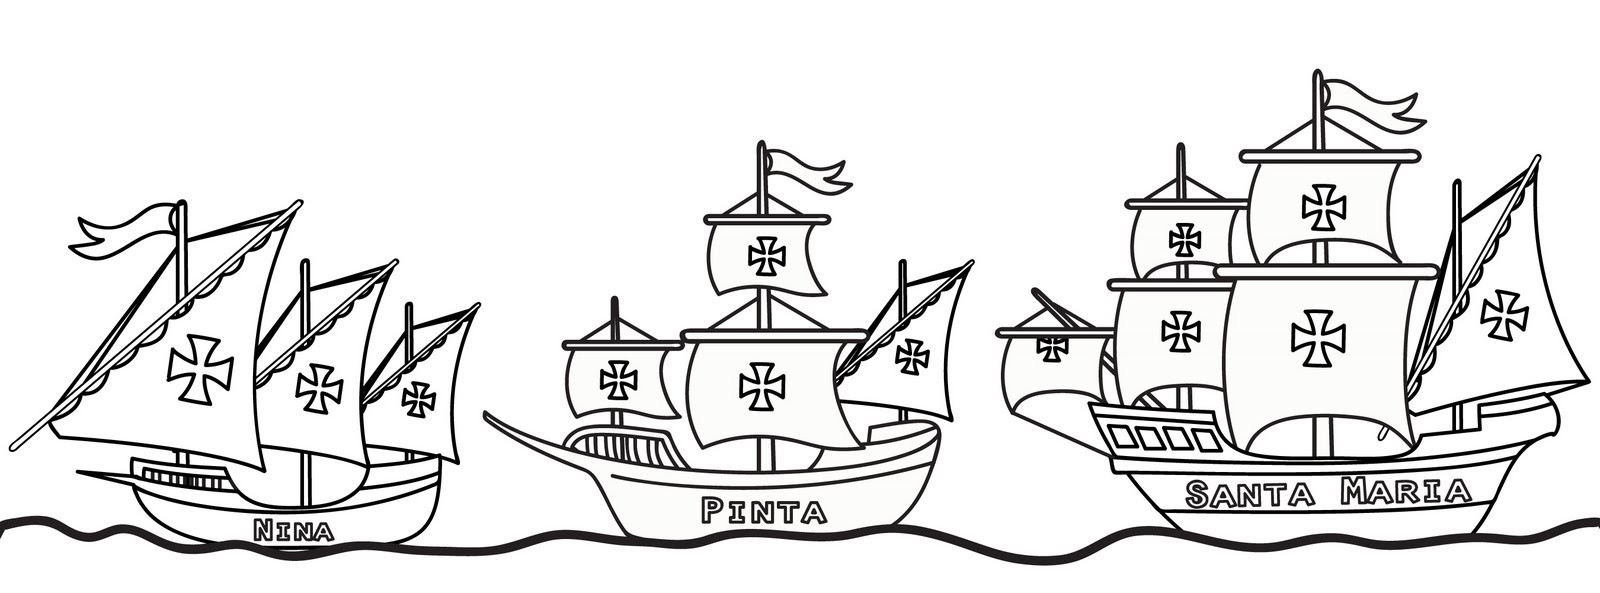 Columbus Day Coloring Pages Best Coloring Pages For Kids